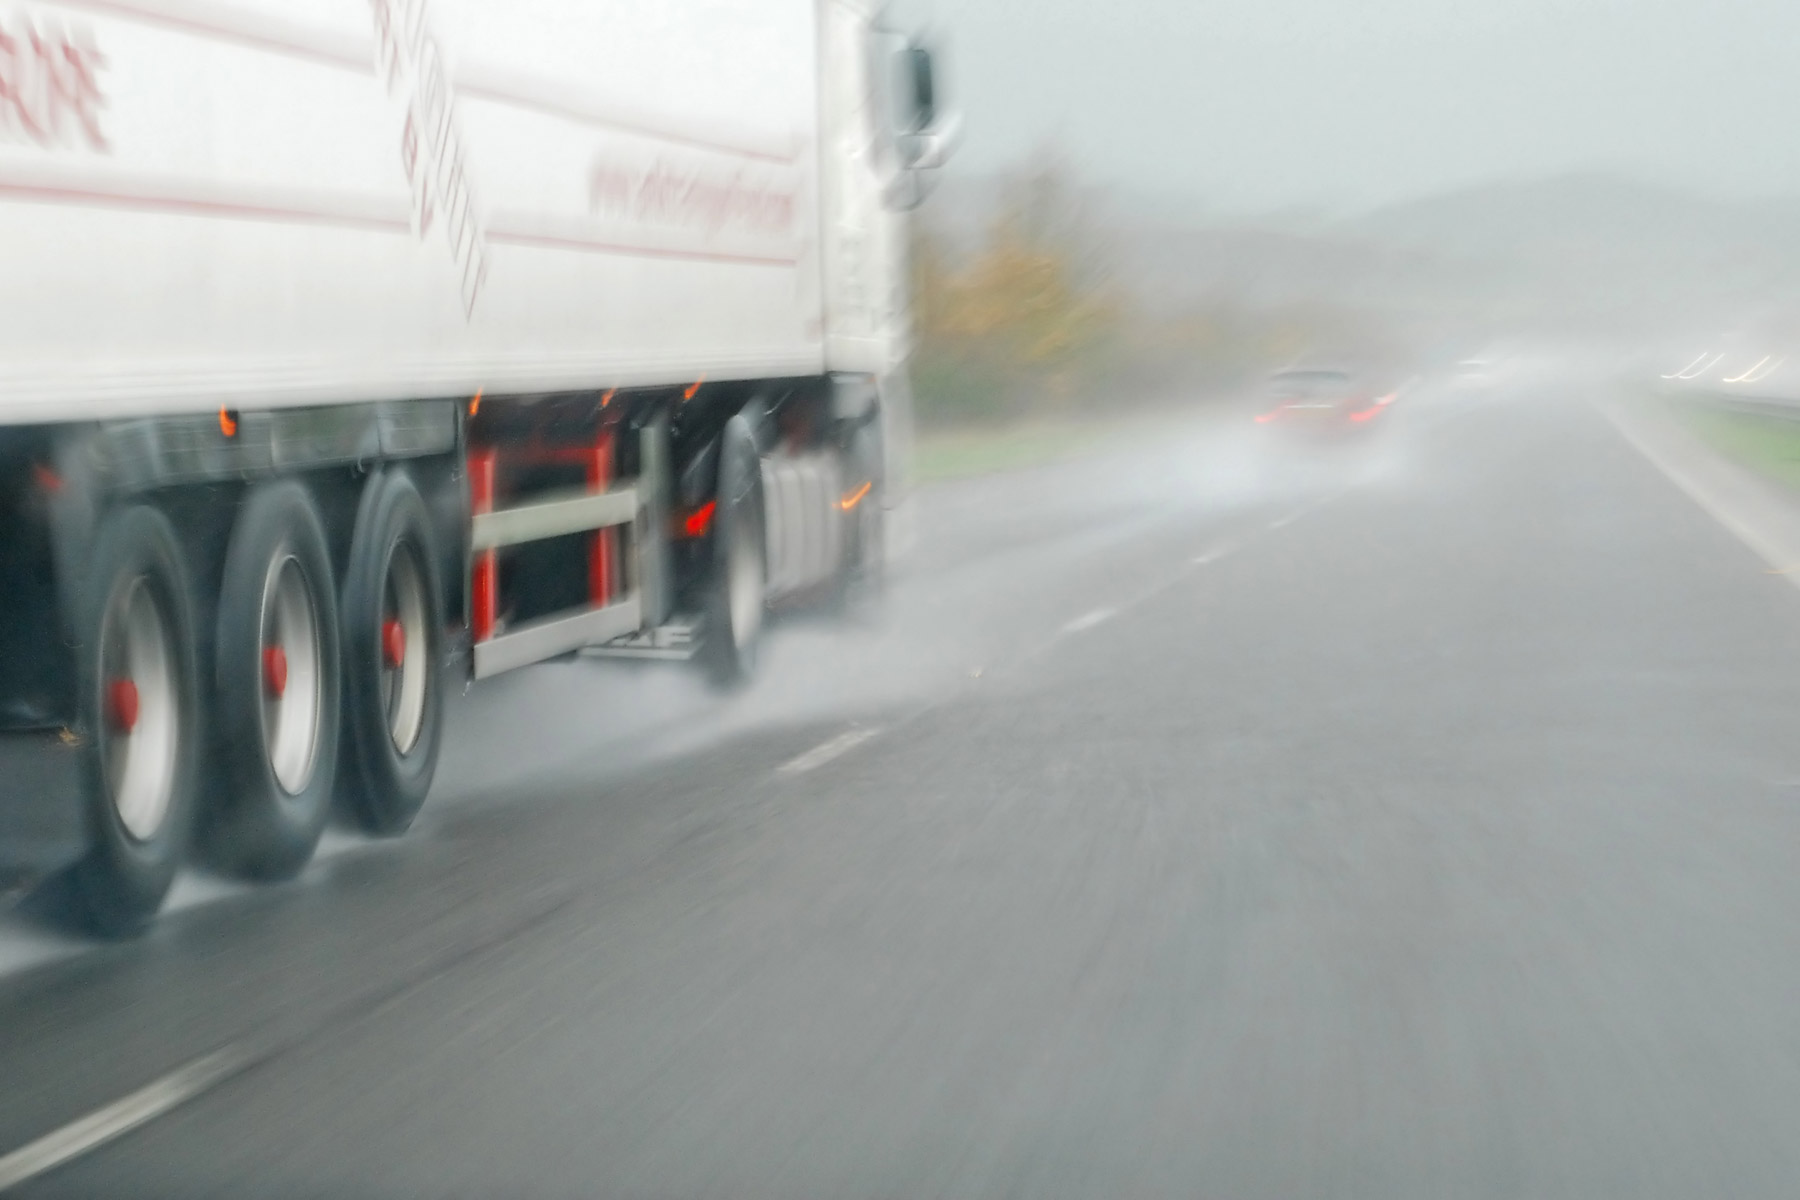 Lorry driving on a wet road